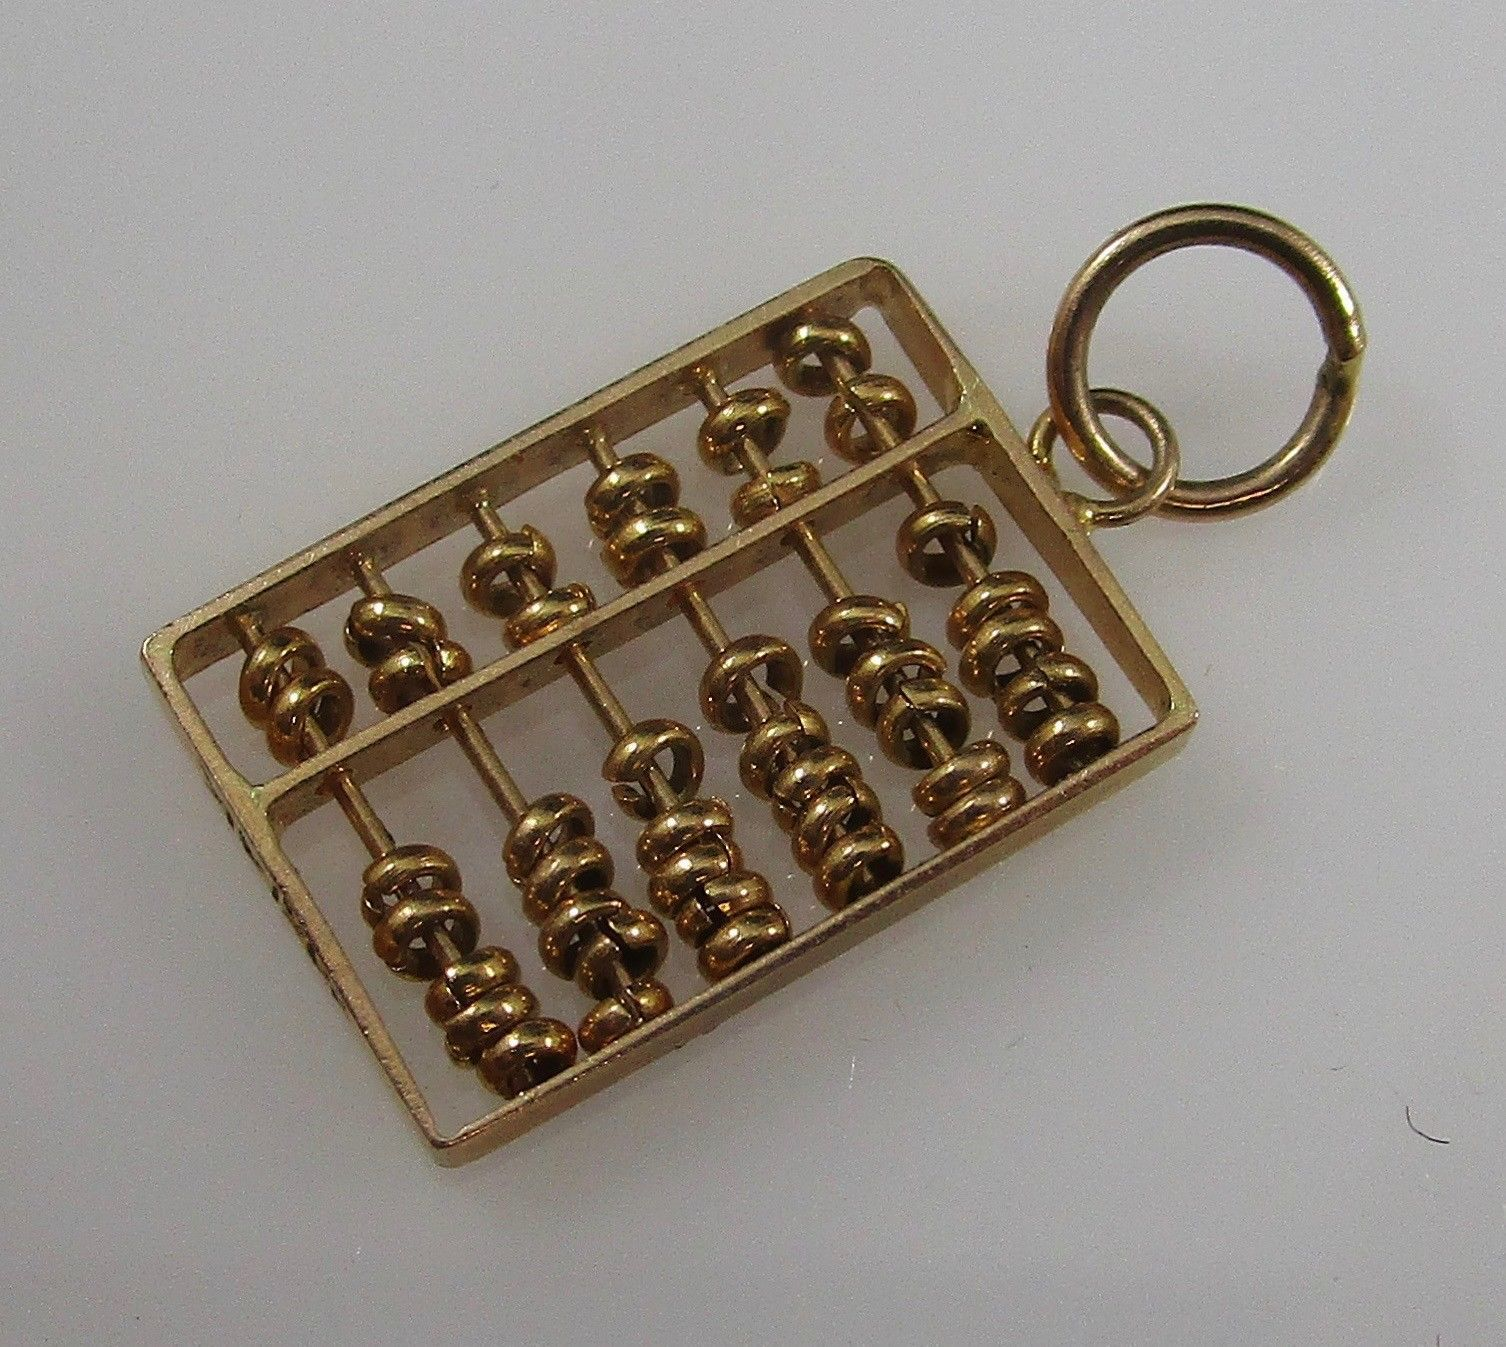 14K GOLD ABACUS Vintage Charm Pendant moveable parts marked 585 14K - FREE SHIP